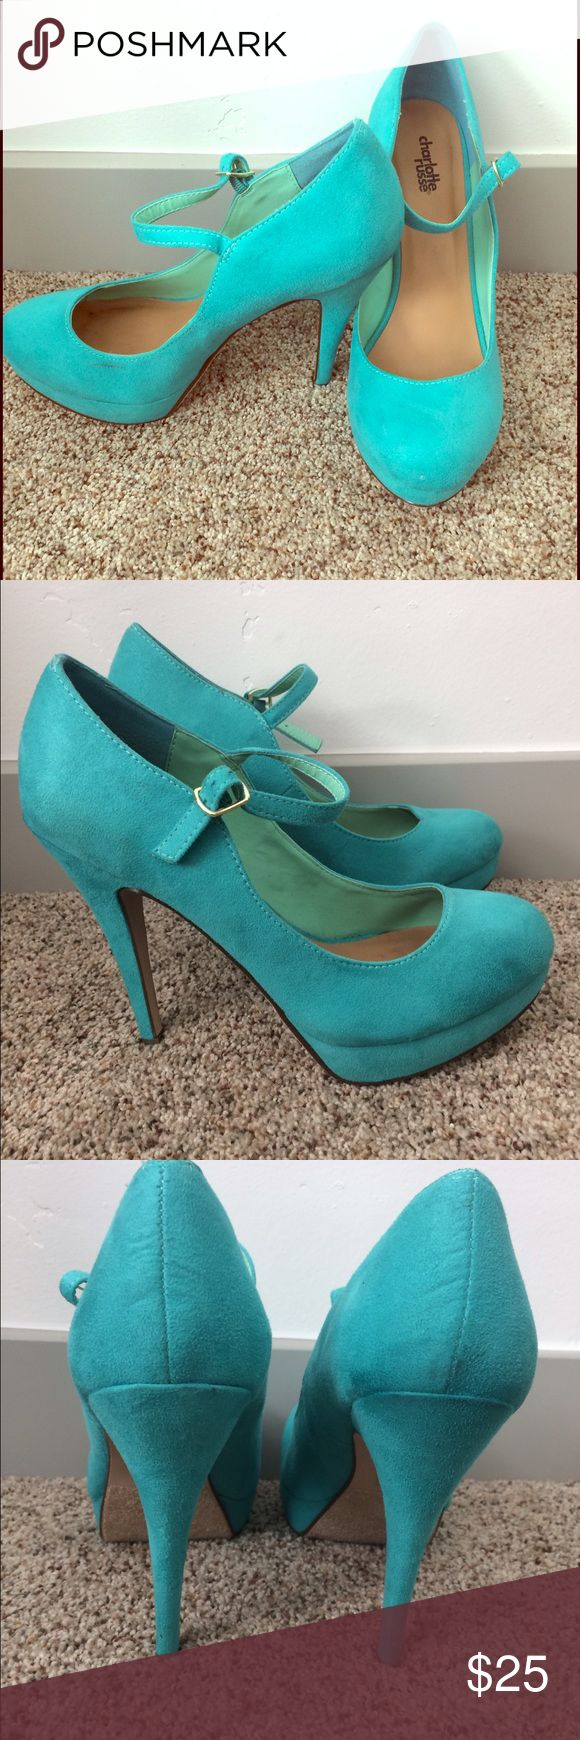 Charlotte russe pumps Gorgeous mint pumps!  This are in excellent condition, only ever wore once. They still have the size tag on the bottom. Charlotte Russe Shoes Heels